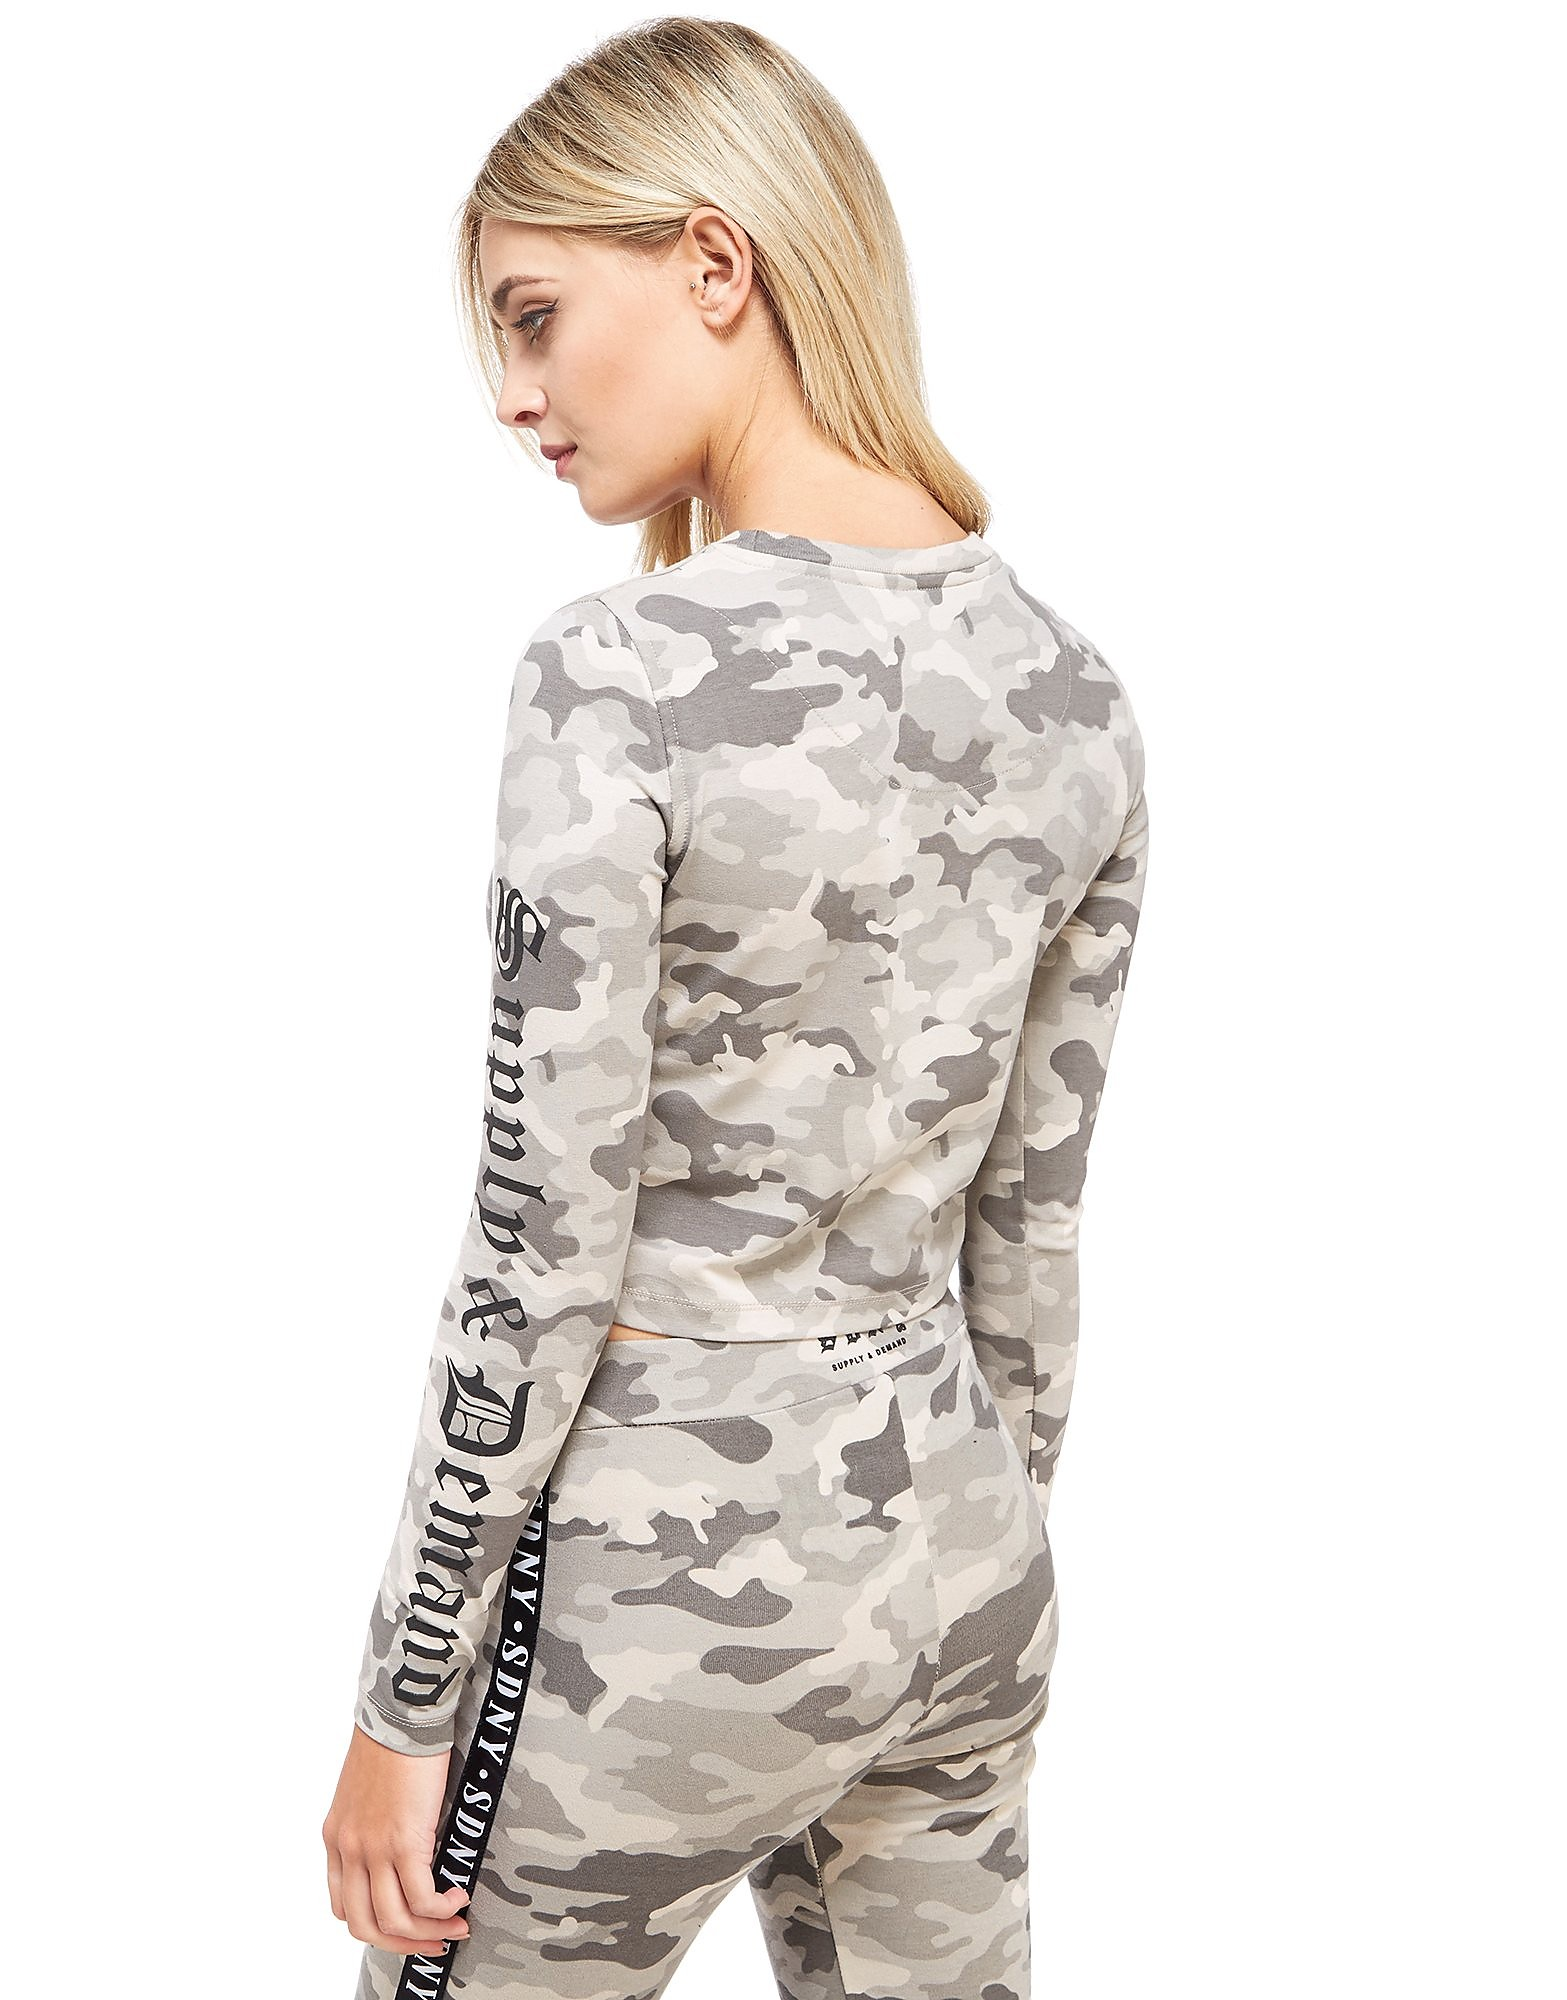 Supply & Demand Camo Crop Longsleeve Top